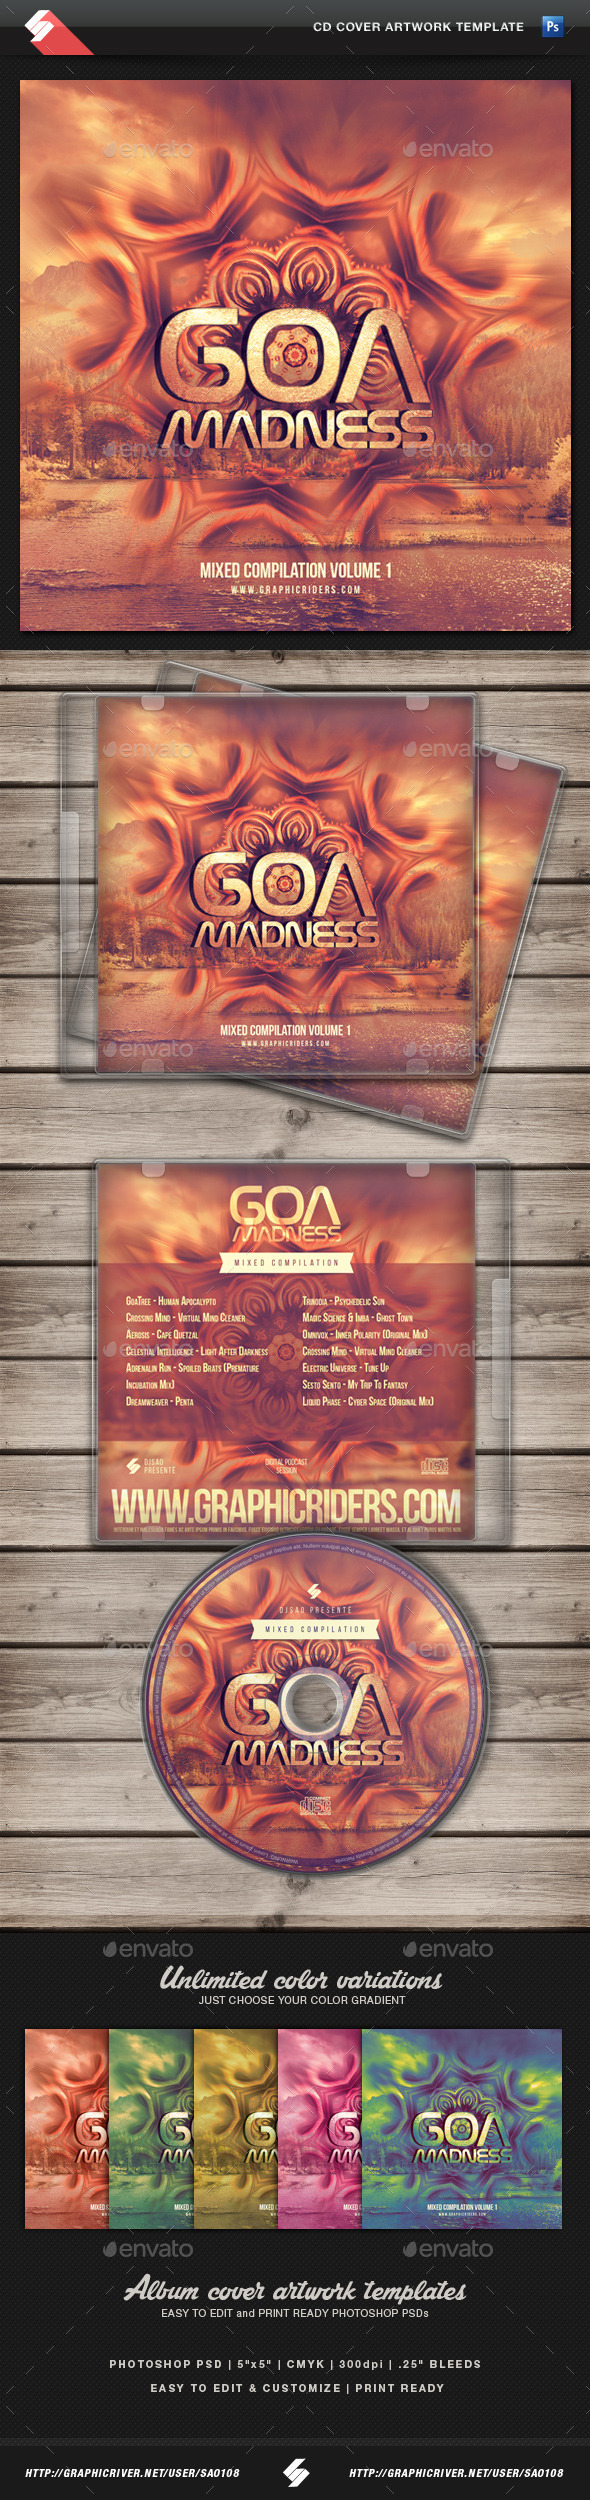 GraphicRiver Goa Madness Psytrance Album CD Cover Template 11250328